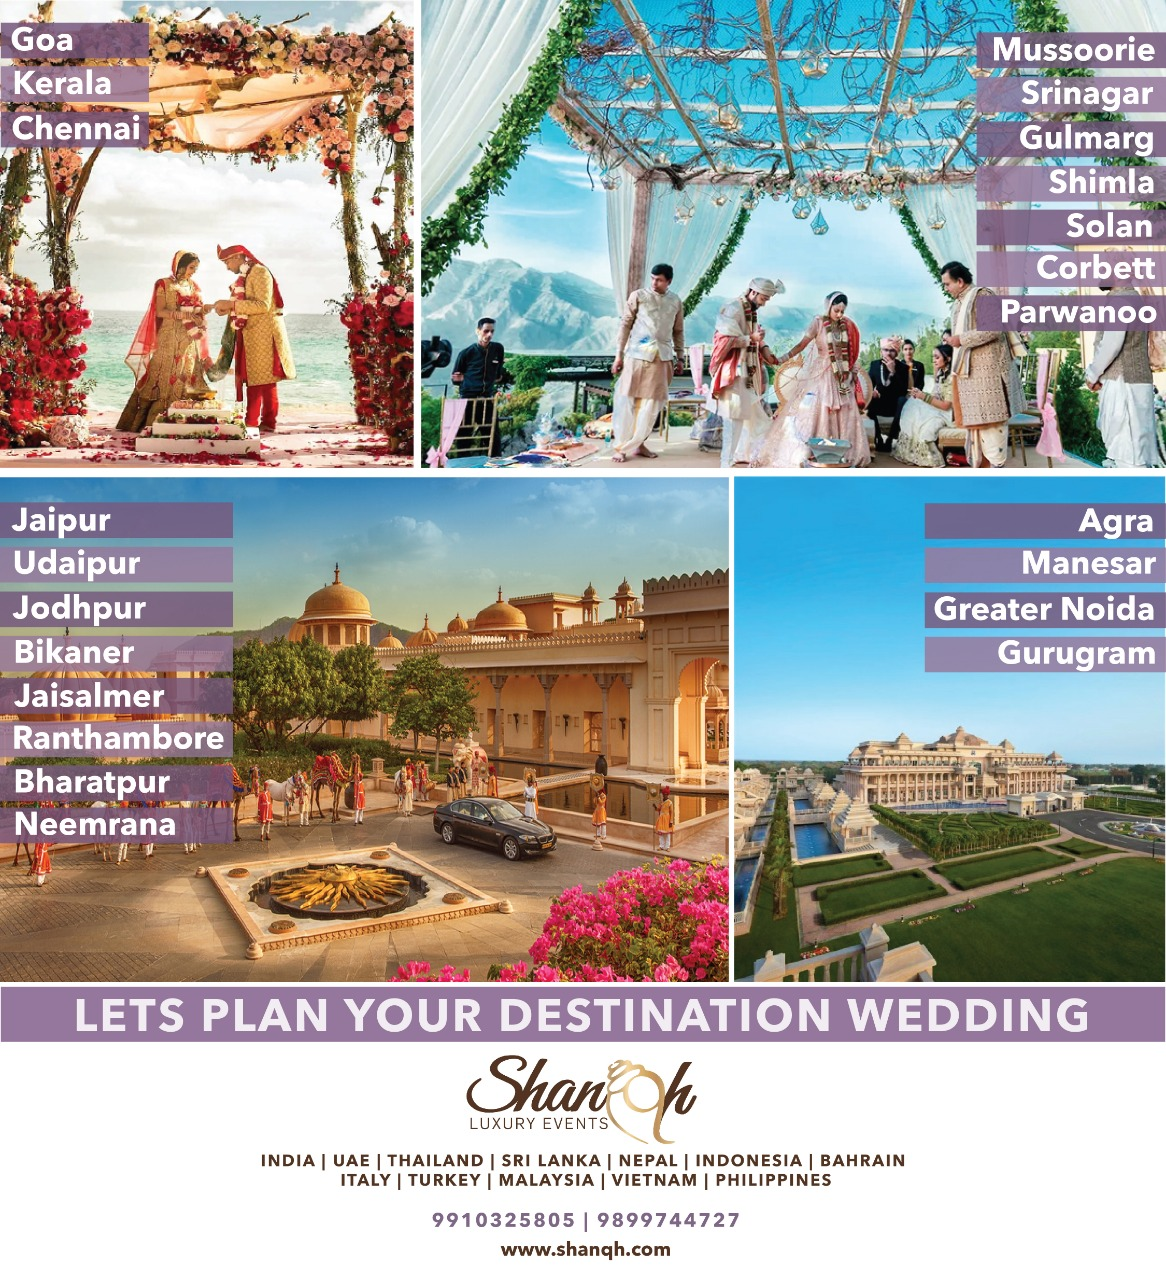 Some FAQ's You Need to Know to Plan a Destination Wedding!